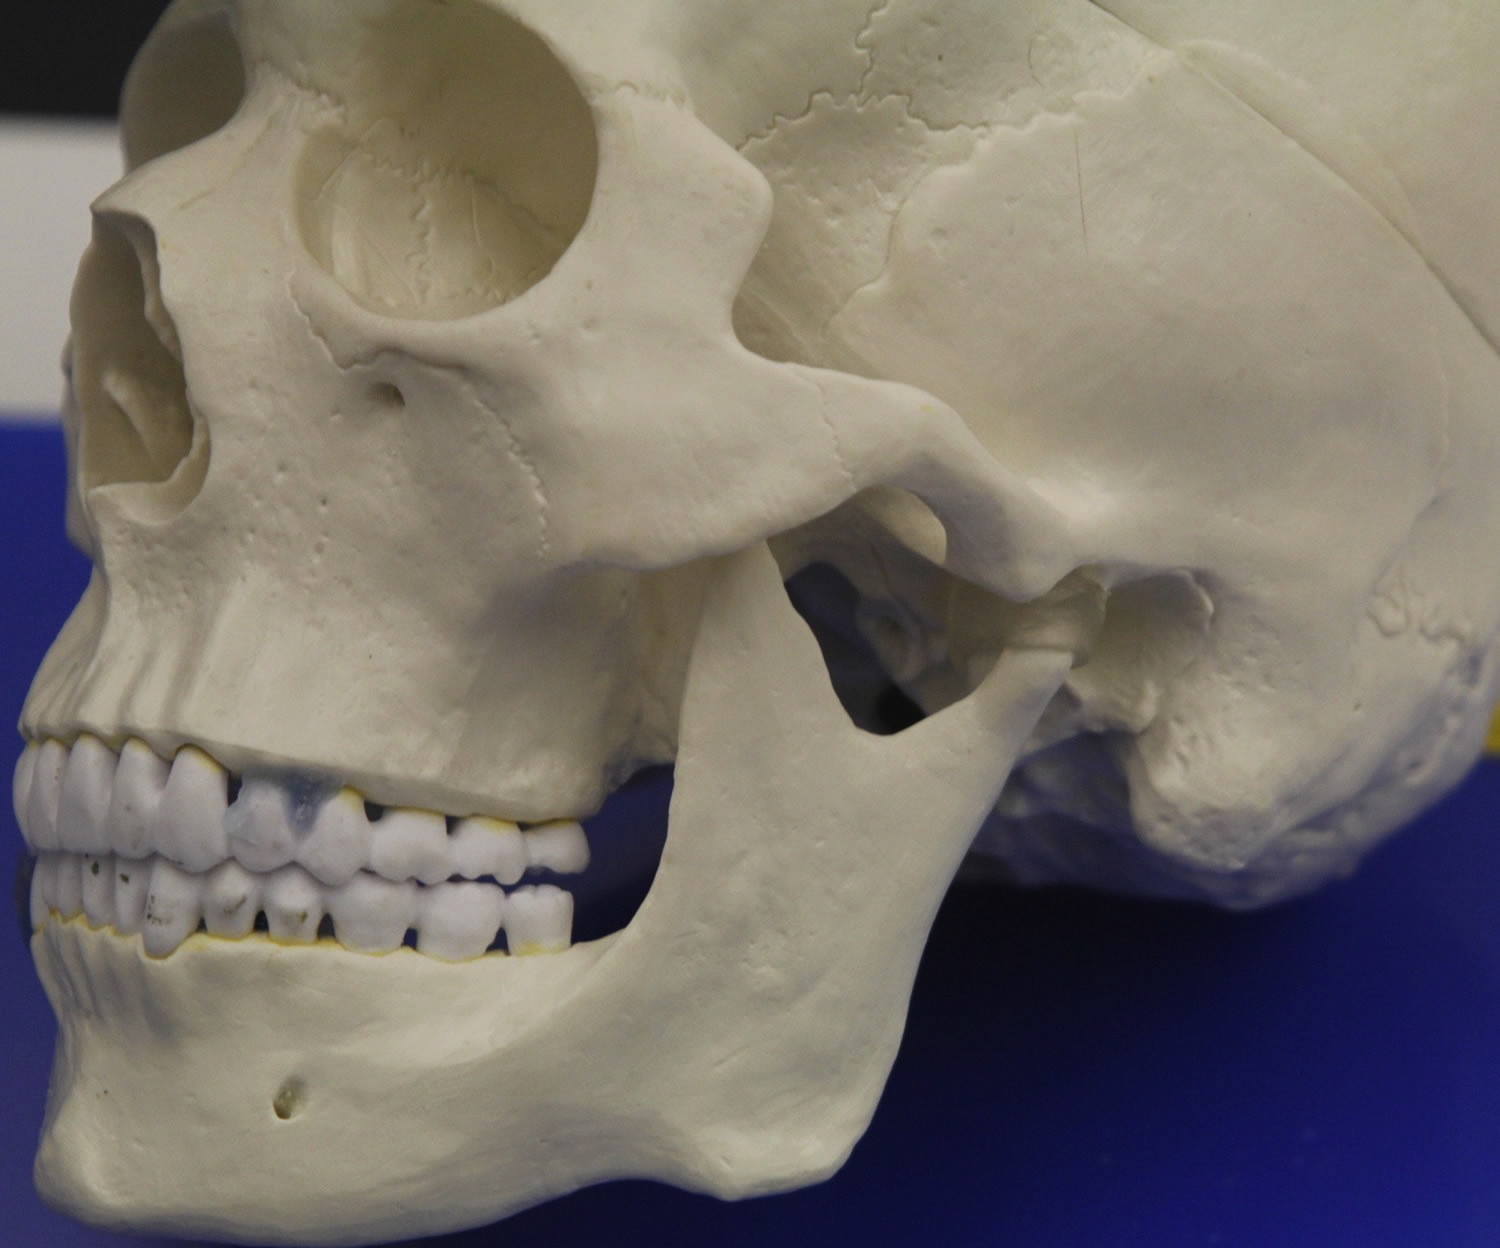 This is a model of the temporomandibular joint.